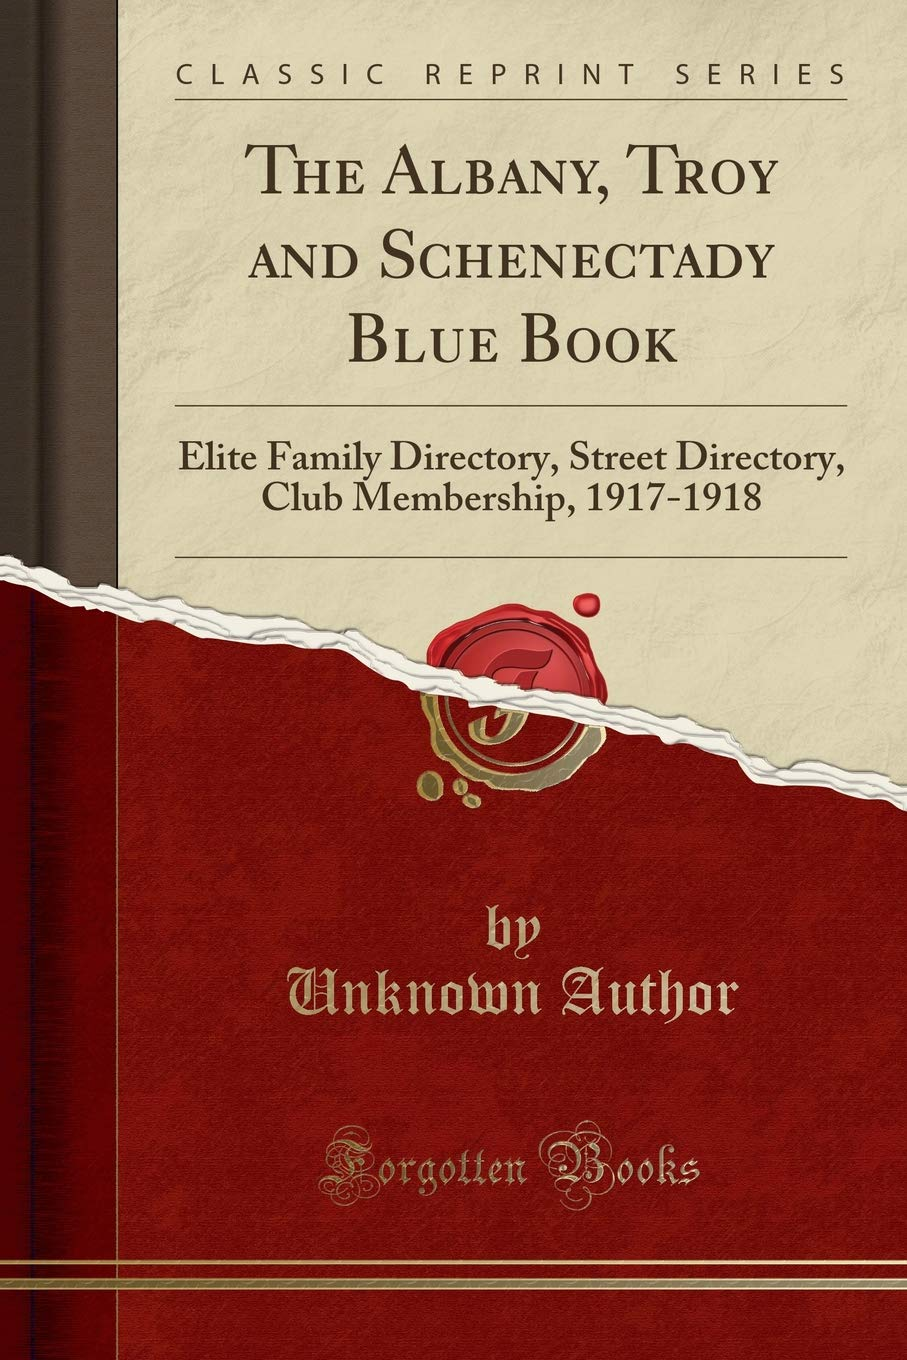 The Albany, Troy and Schenectady Blue Book: Elite Family Directory, Street Directory, Club Membership, 1917-1918 (Classic Reprint) pdf